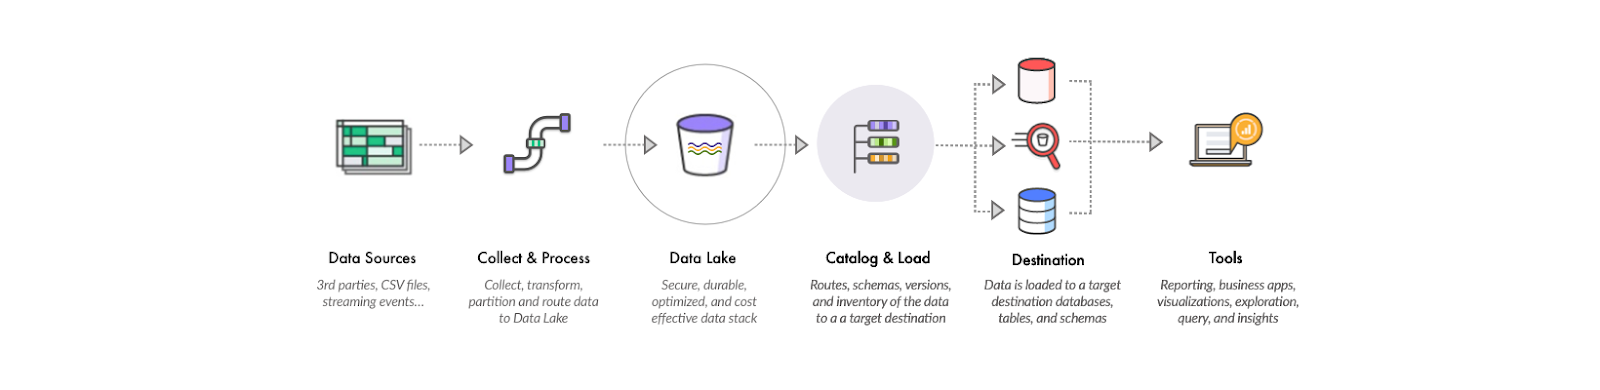 Data Lakes? Big Myths About Architecture, Strategy, and